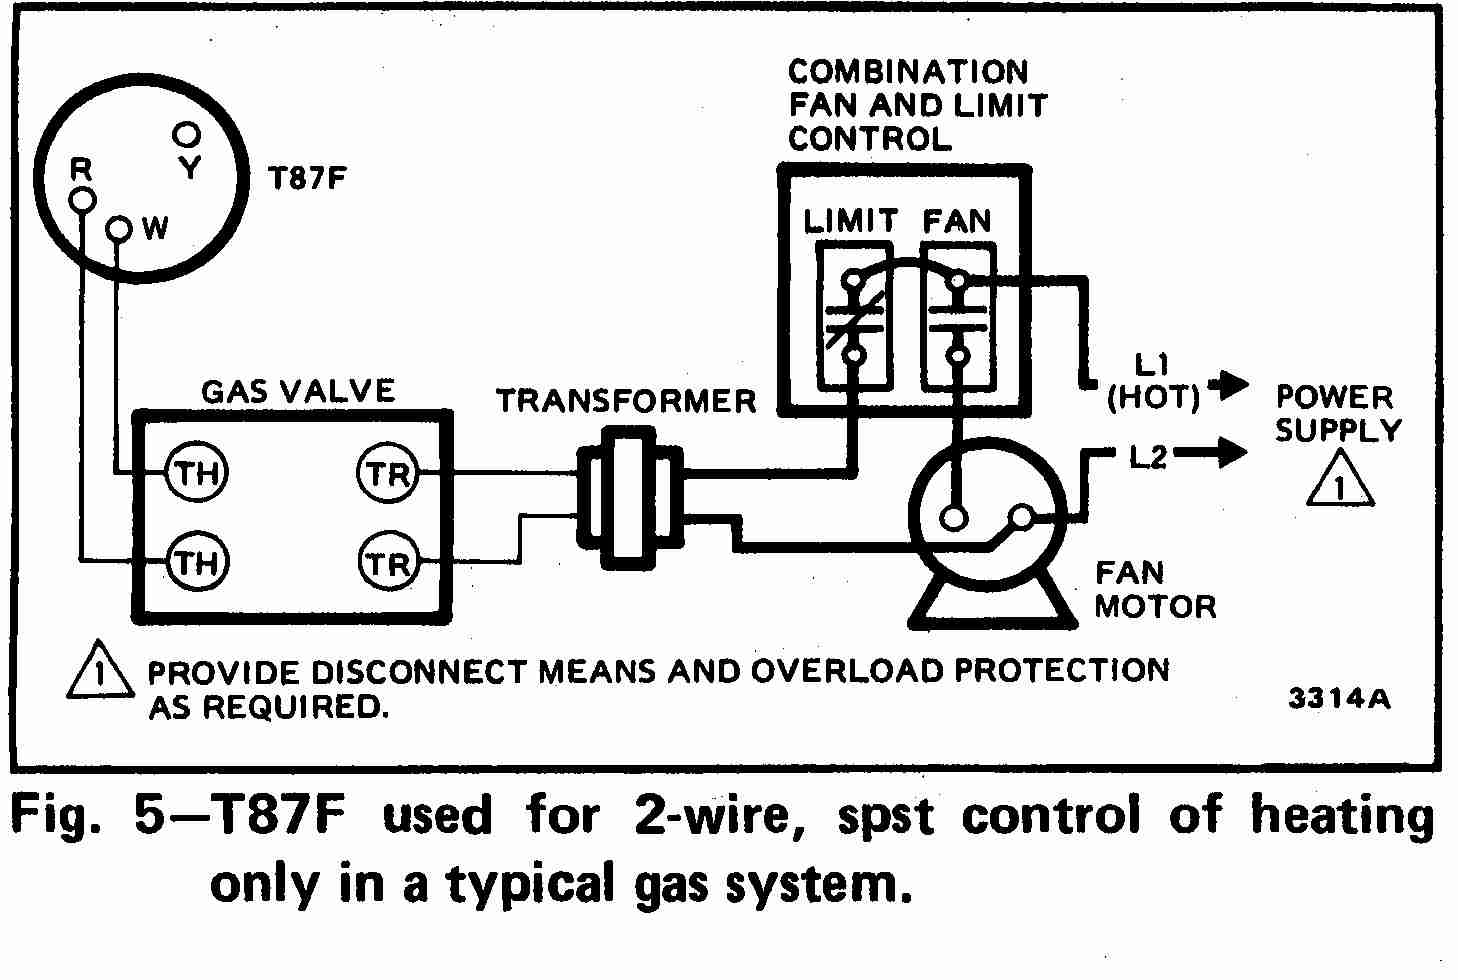 wall furnace wiring diagram wall wiring diagrams online guide to wiring connections for room thermostats